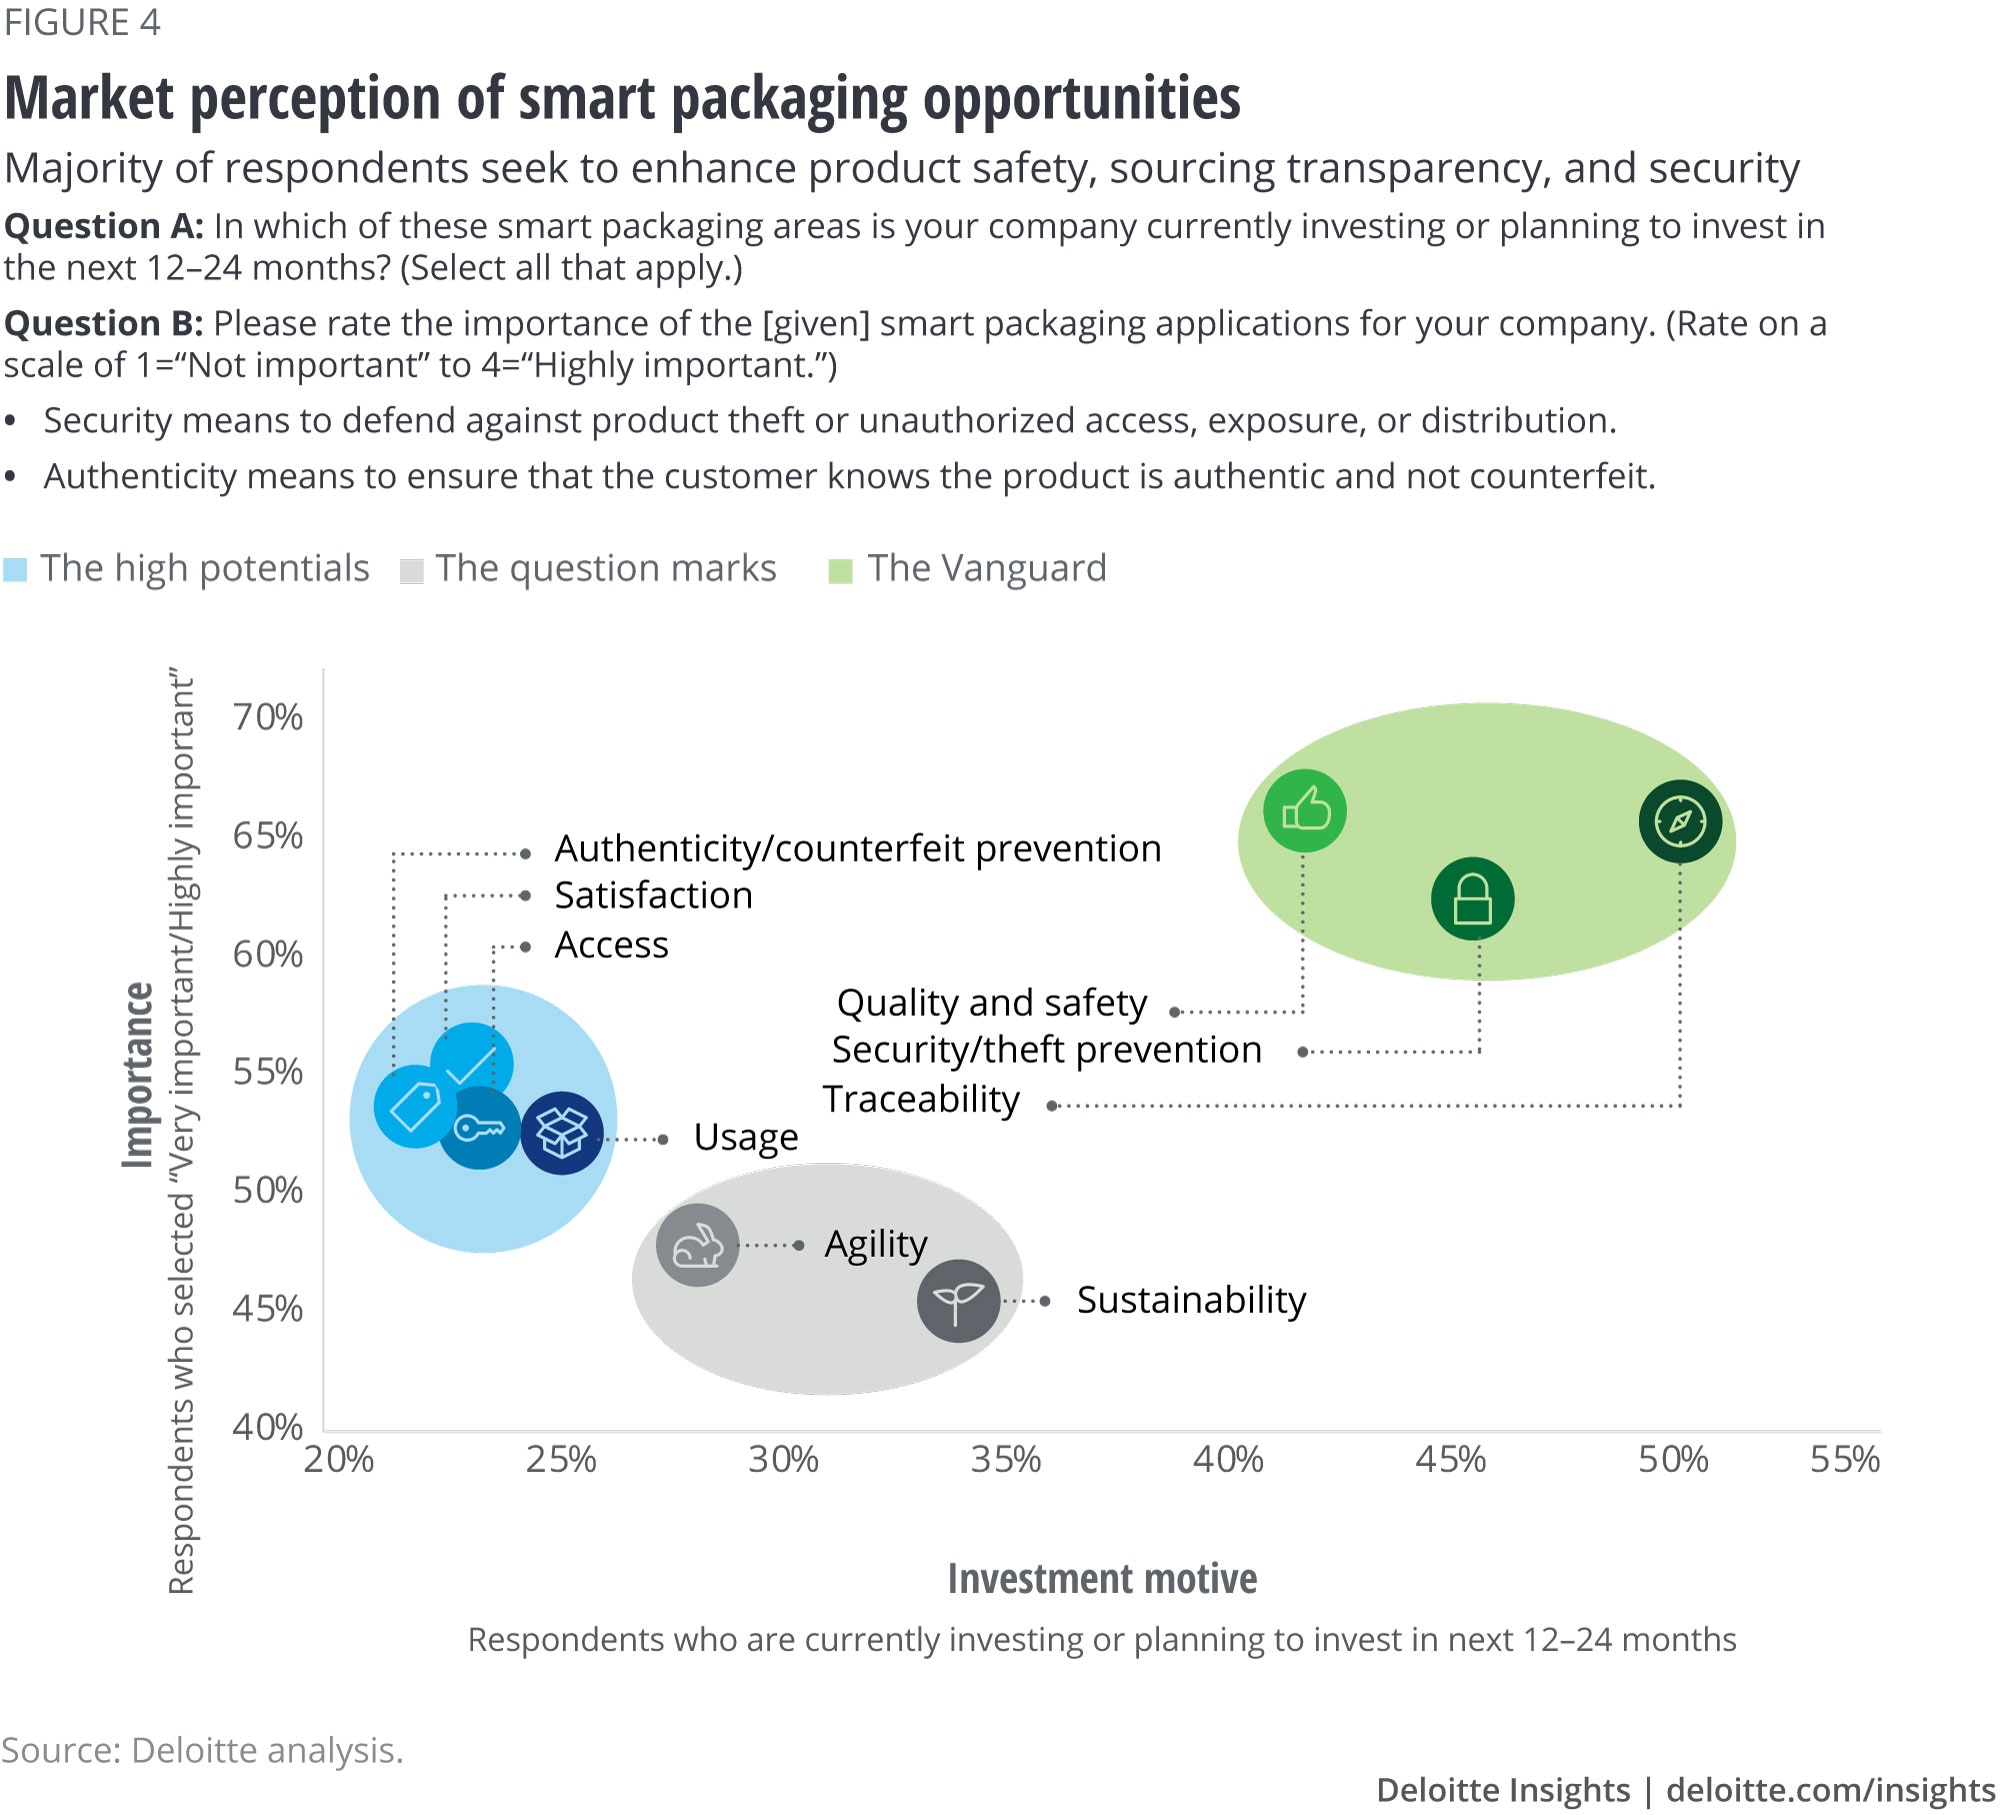 Market perception of smart packaging opportunities